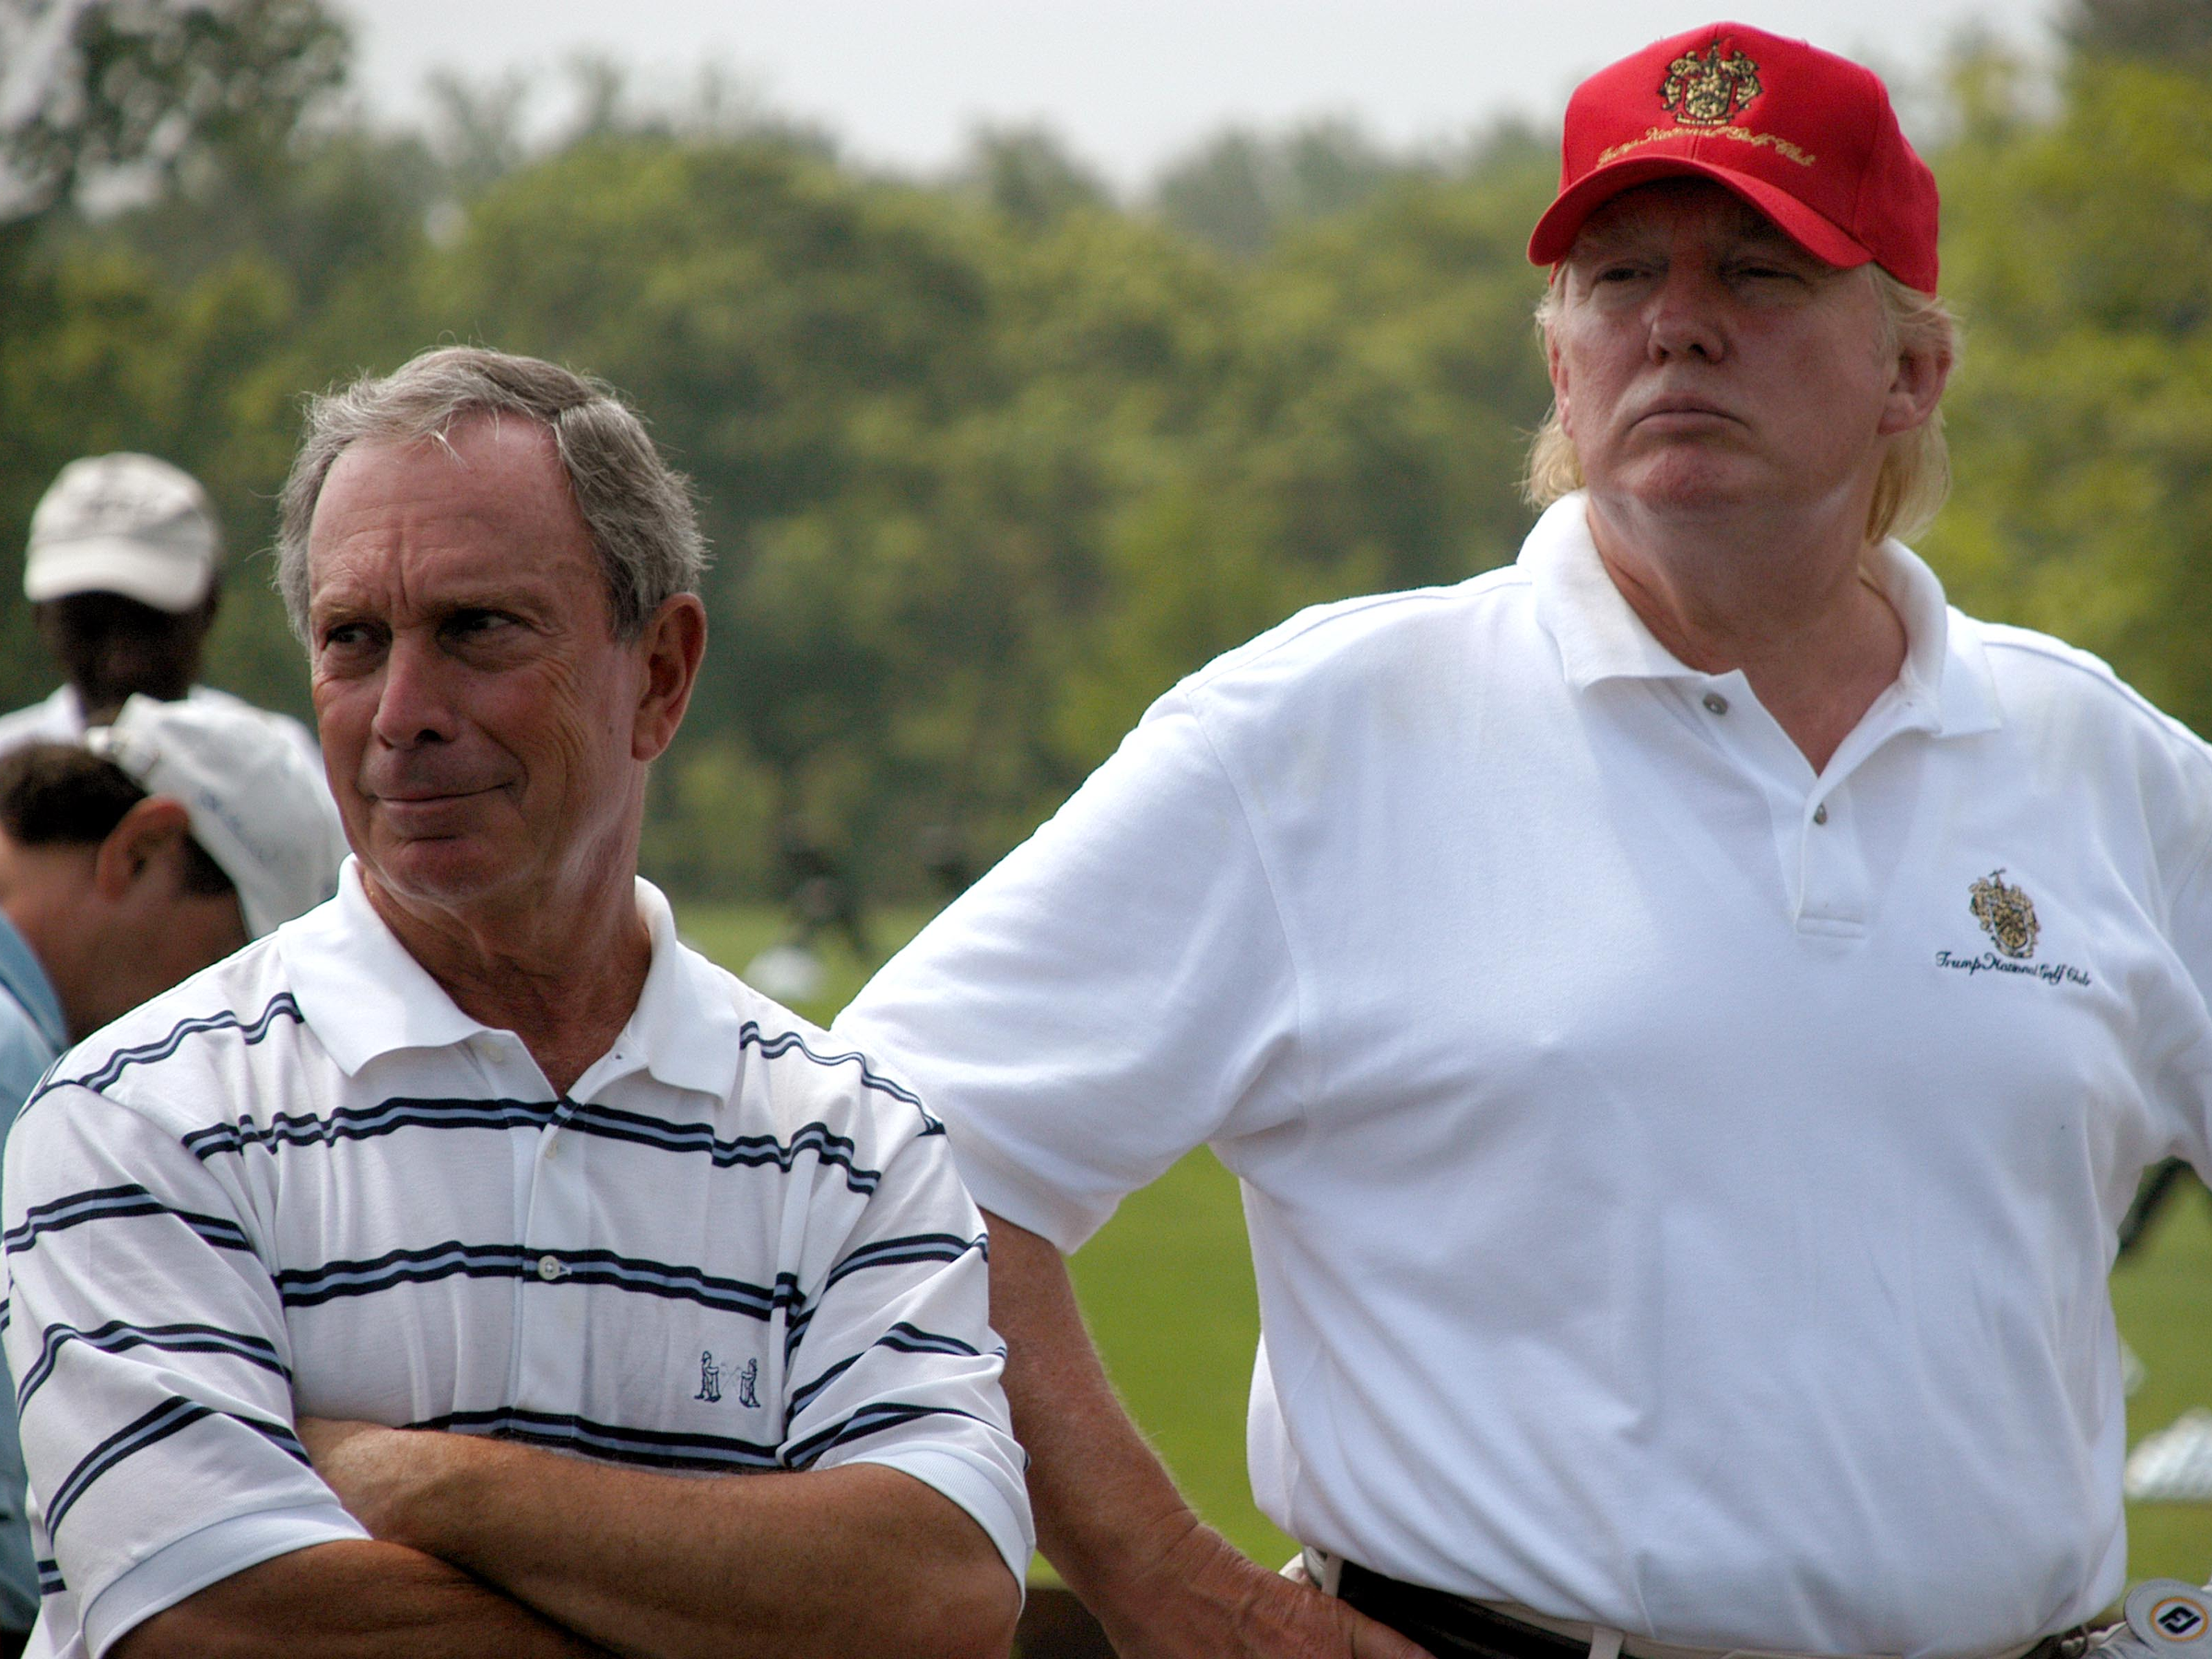 Mike Bloomberg and Donald Trump on golf course